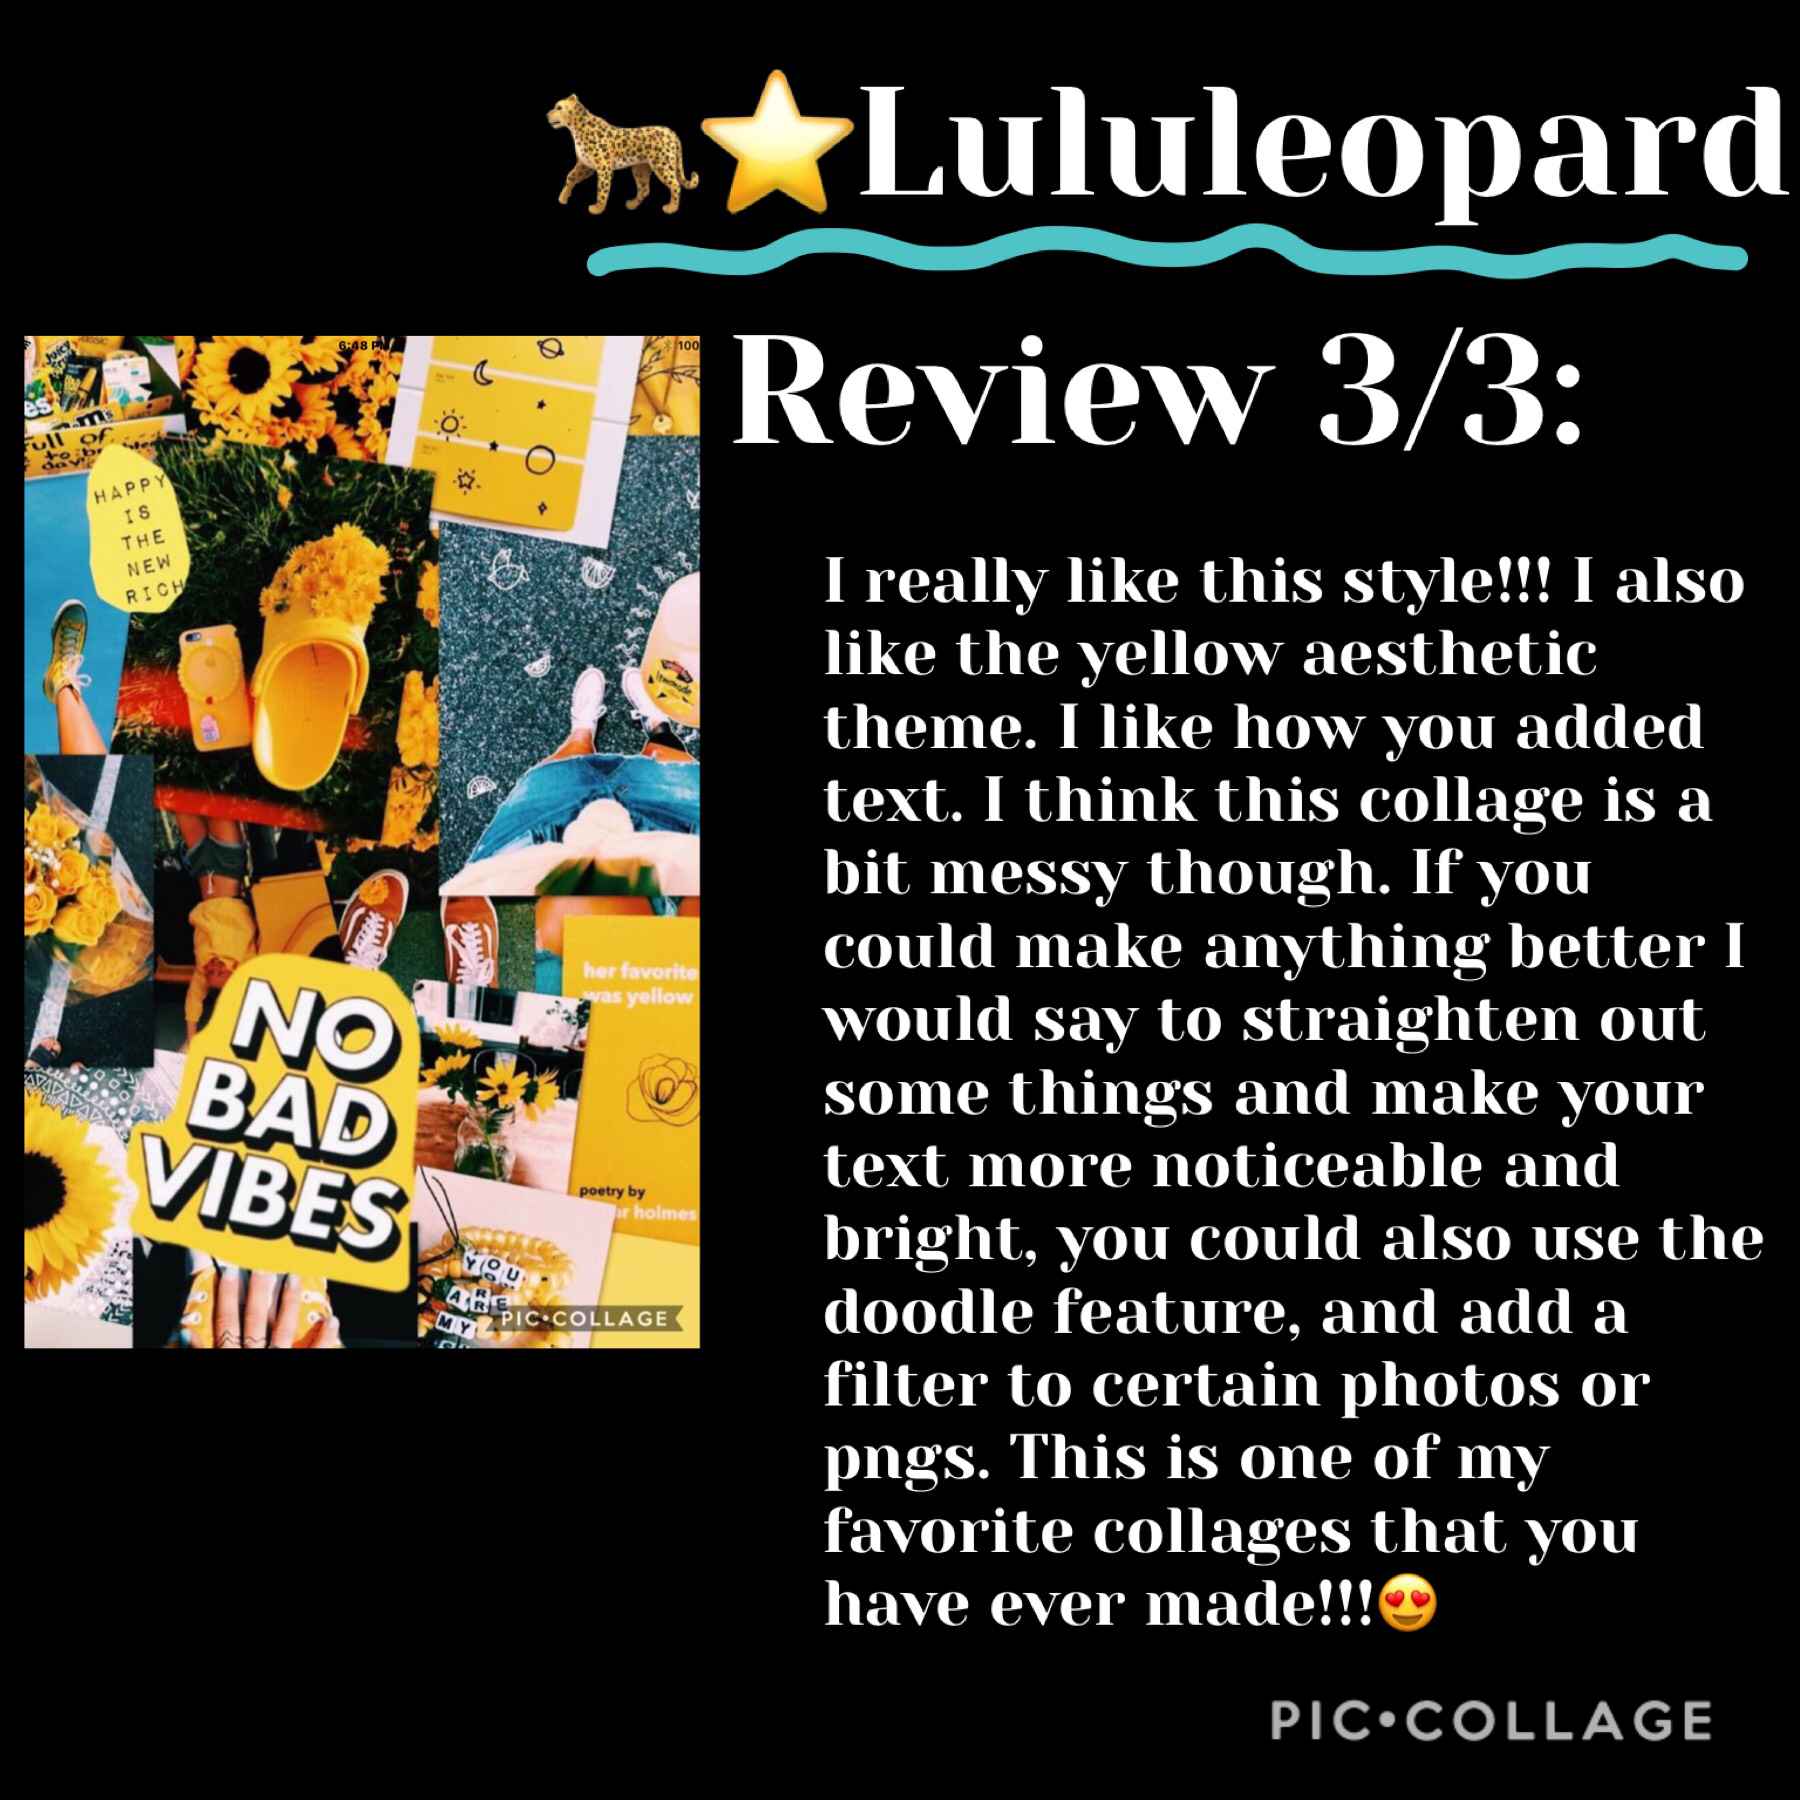 🐆TAP🐆 Review 3/3 for Lululeopard  Please fill out my review sheet to request a review!!  Rating 8.5/10 Im sorry If im being rude but your such a great collager!!  PS go follow @Lululeopard 🐆⭐️🐆⭐️